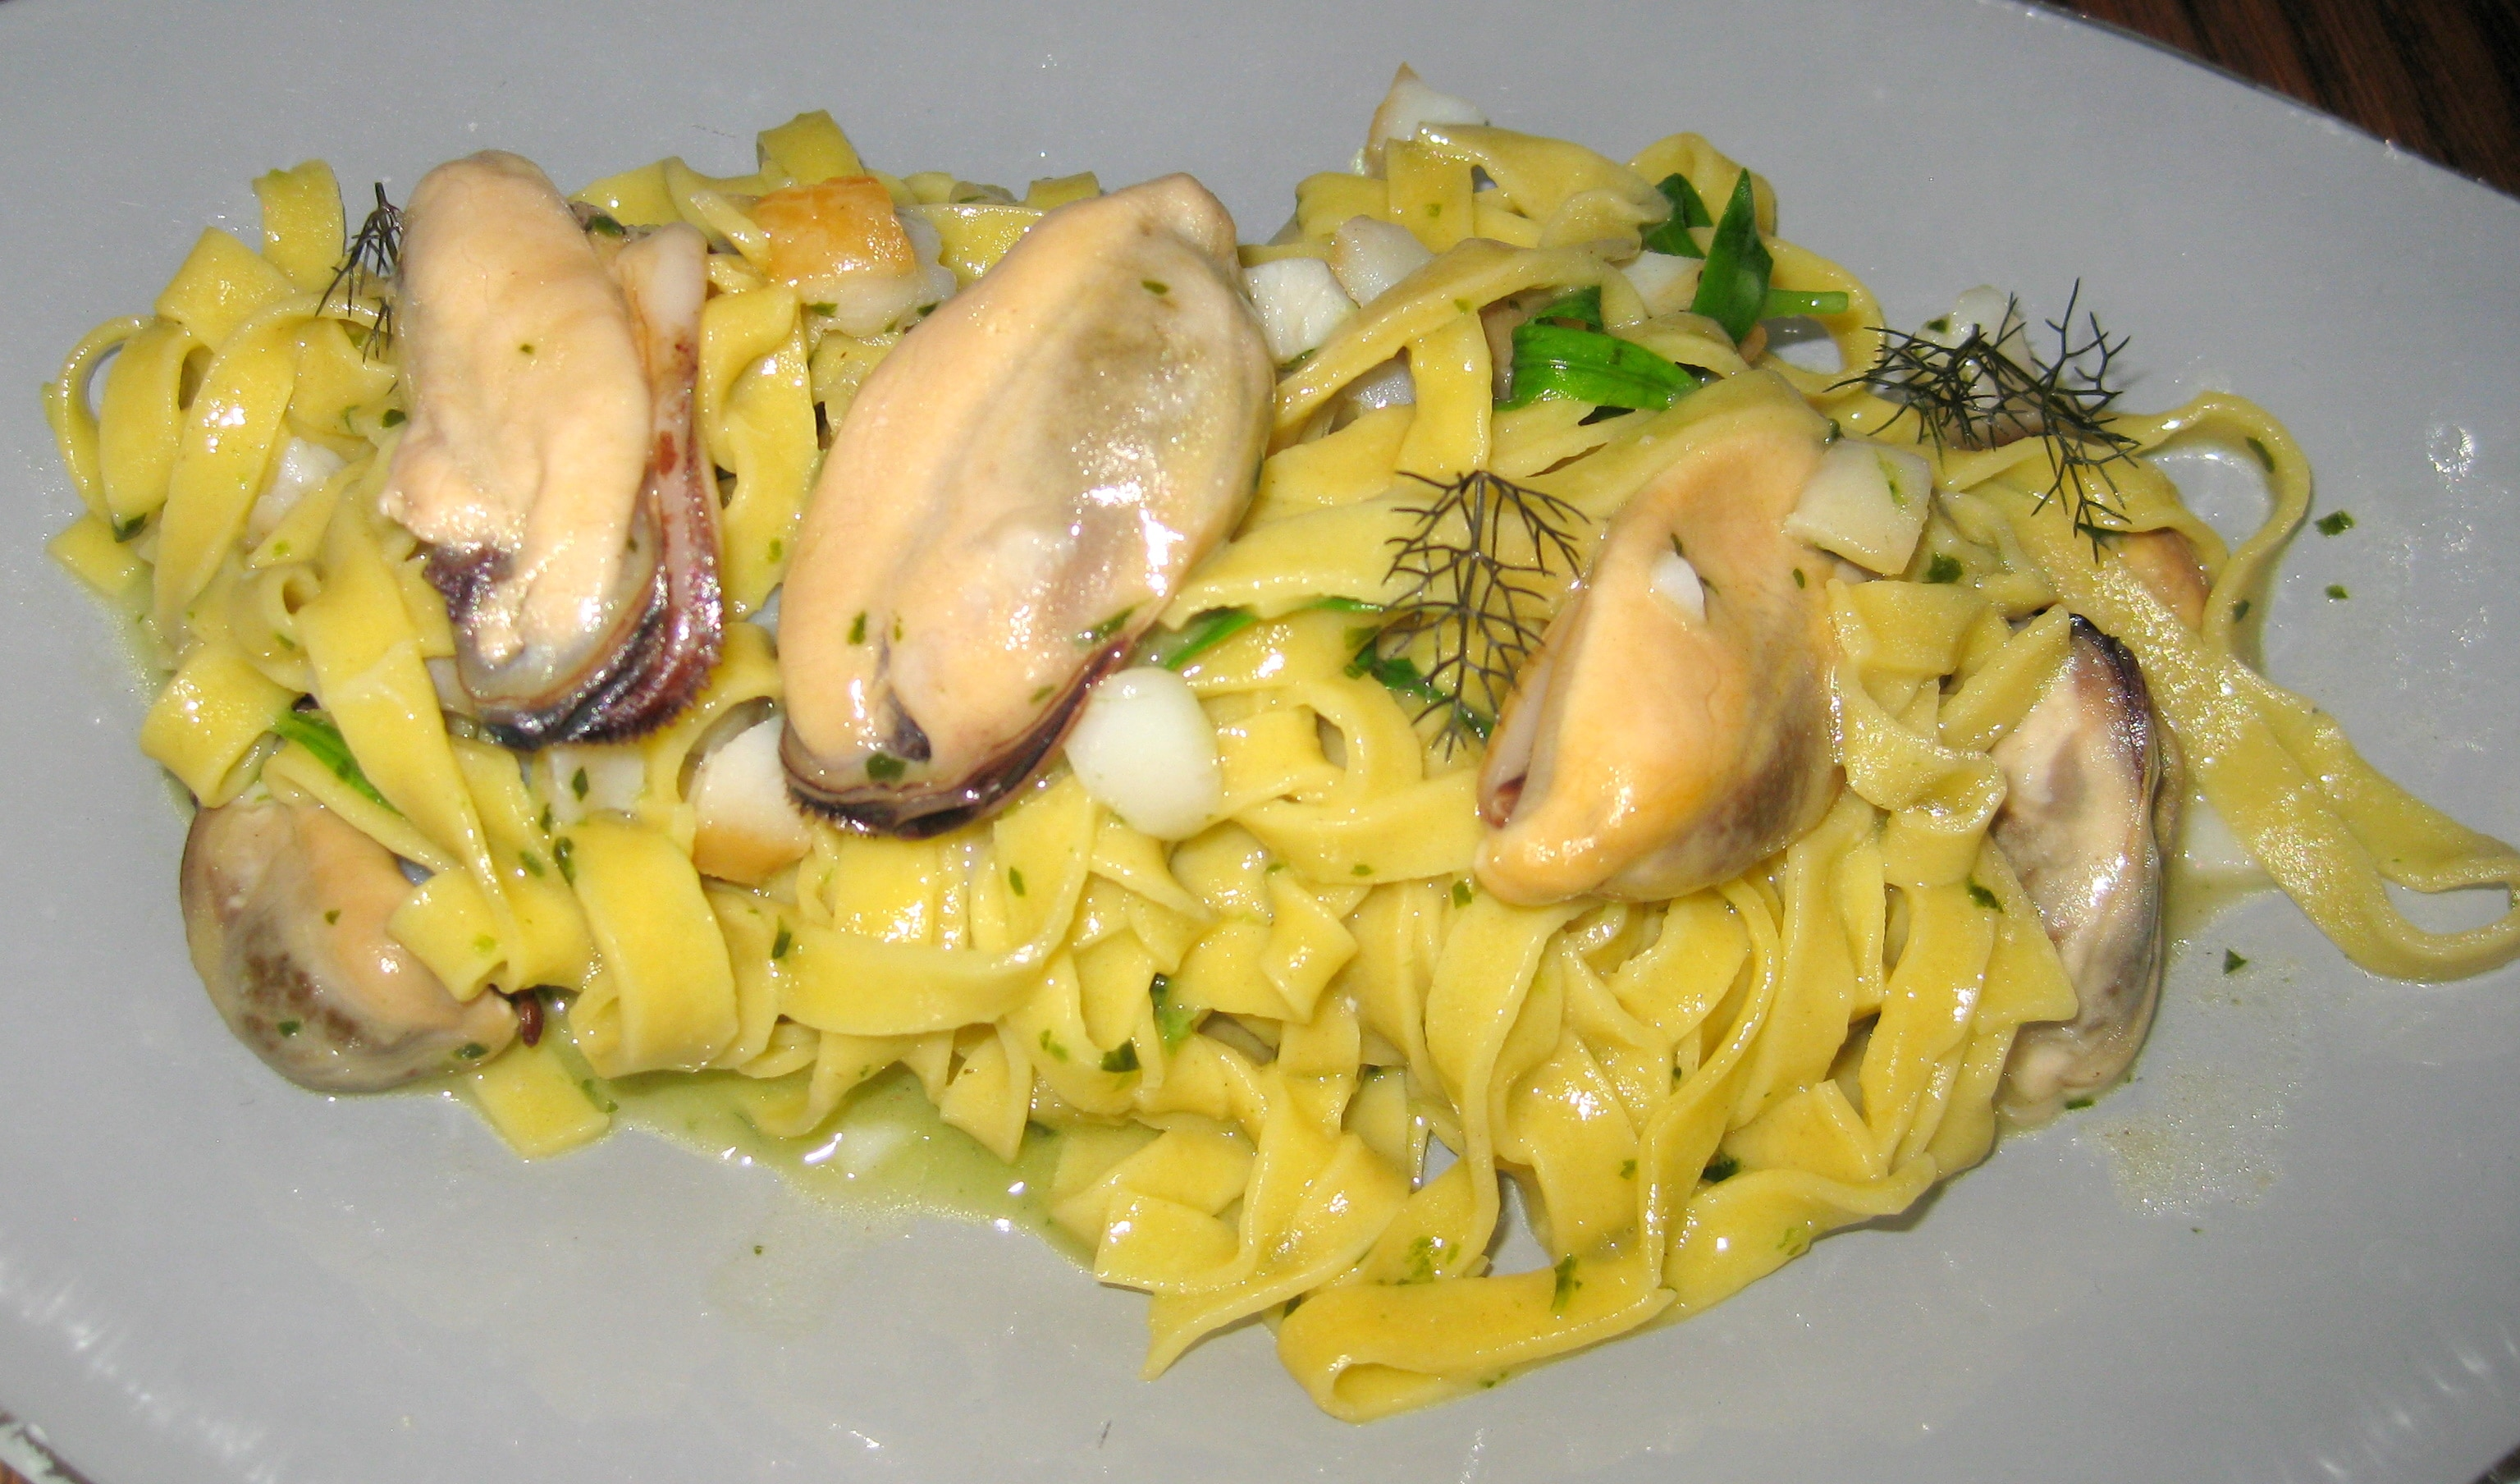 Tagliolini, smoked sablefish, mussels and green chili | GAYOT's Blog